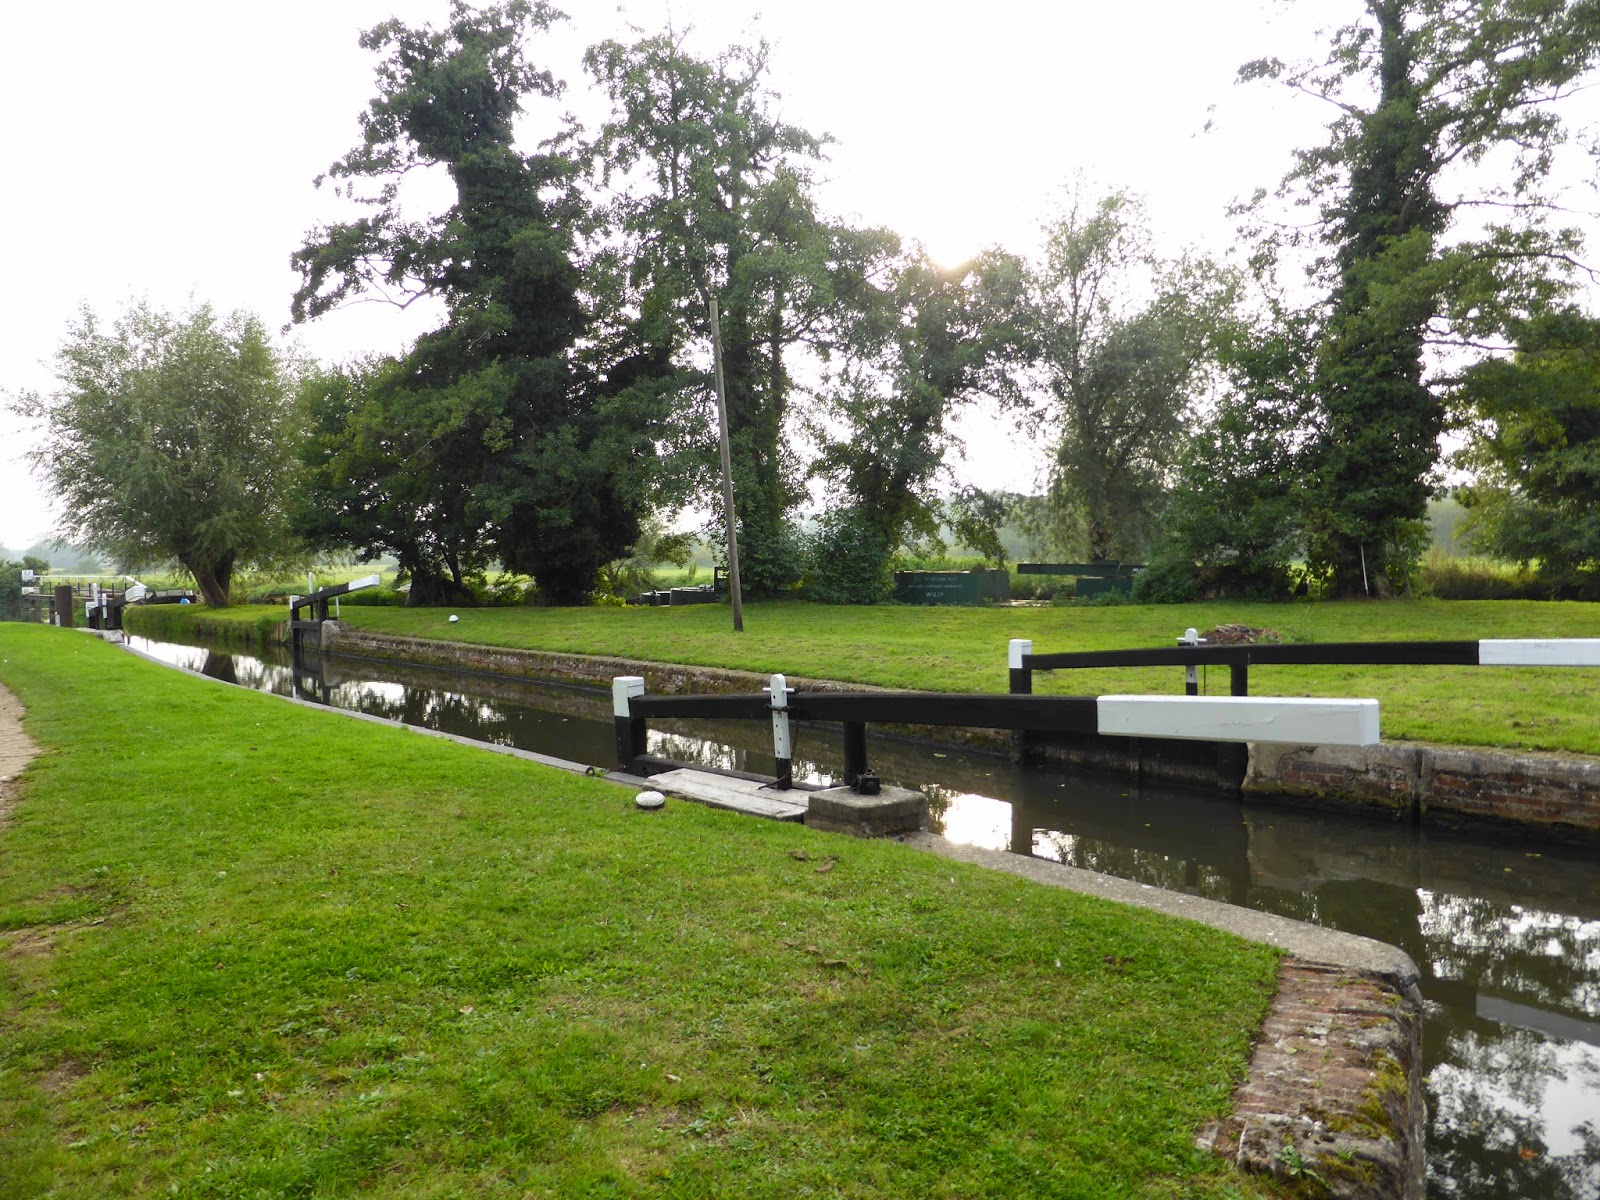 Narrowboat Briar Rose Home Counties Cruise Day 12